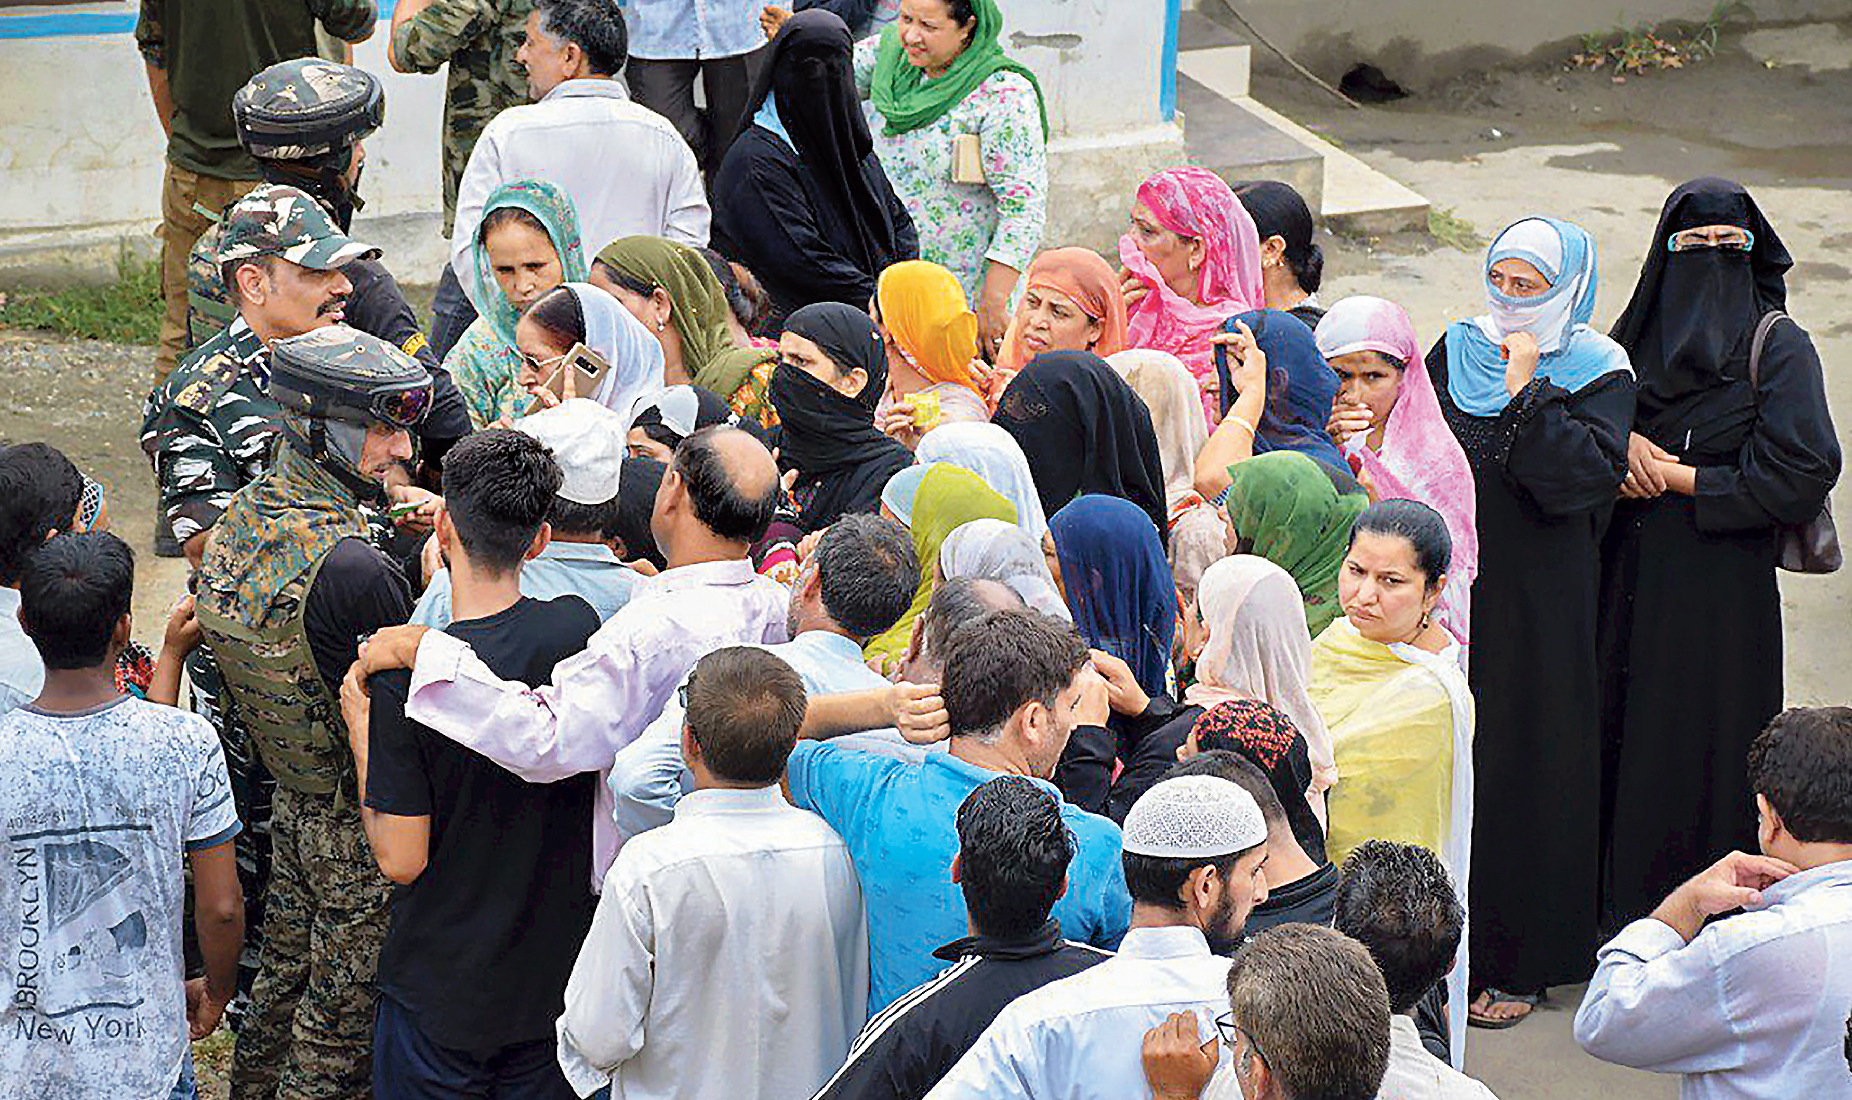 GOVERNMENT PICTURE: A picture tweeted by the home ministry on Sunday morning shows security forces and the civil administration helping people connect with their relatives over the phone in the Kashmir Valley.